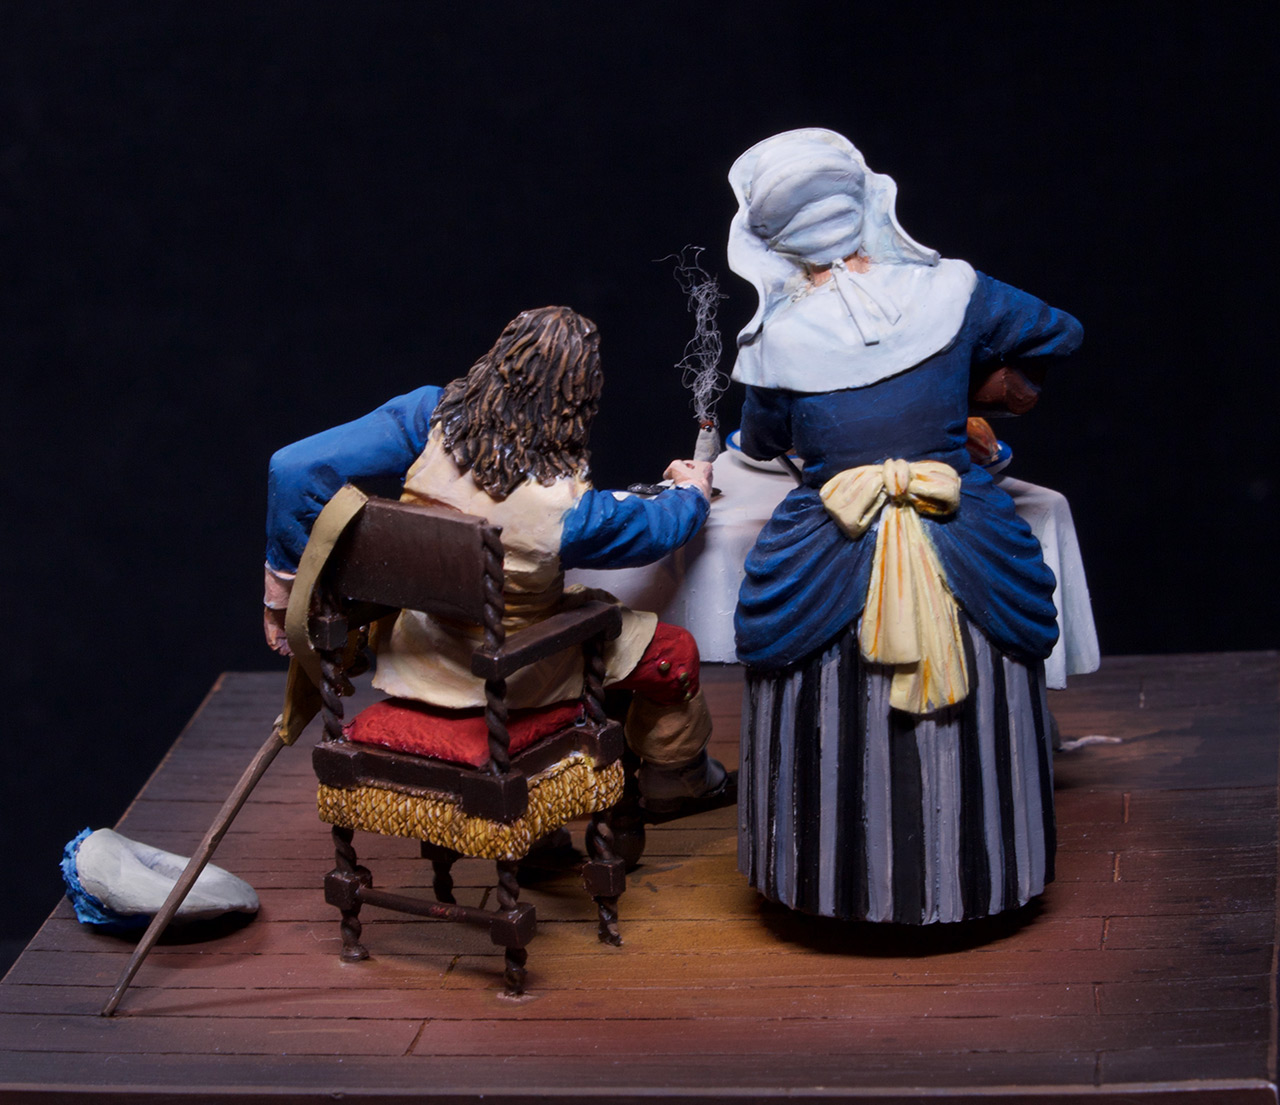 Dioramas and Vignettes: Waitress and cavalier, photo #10